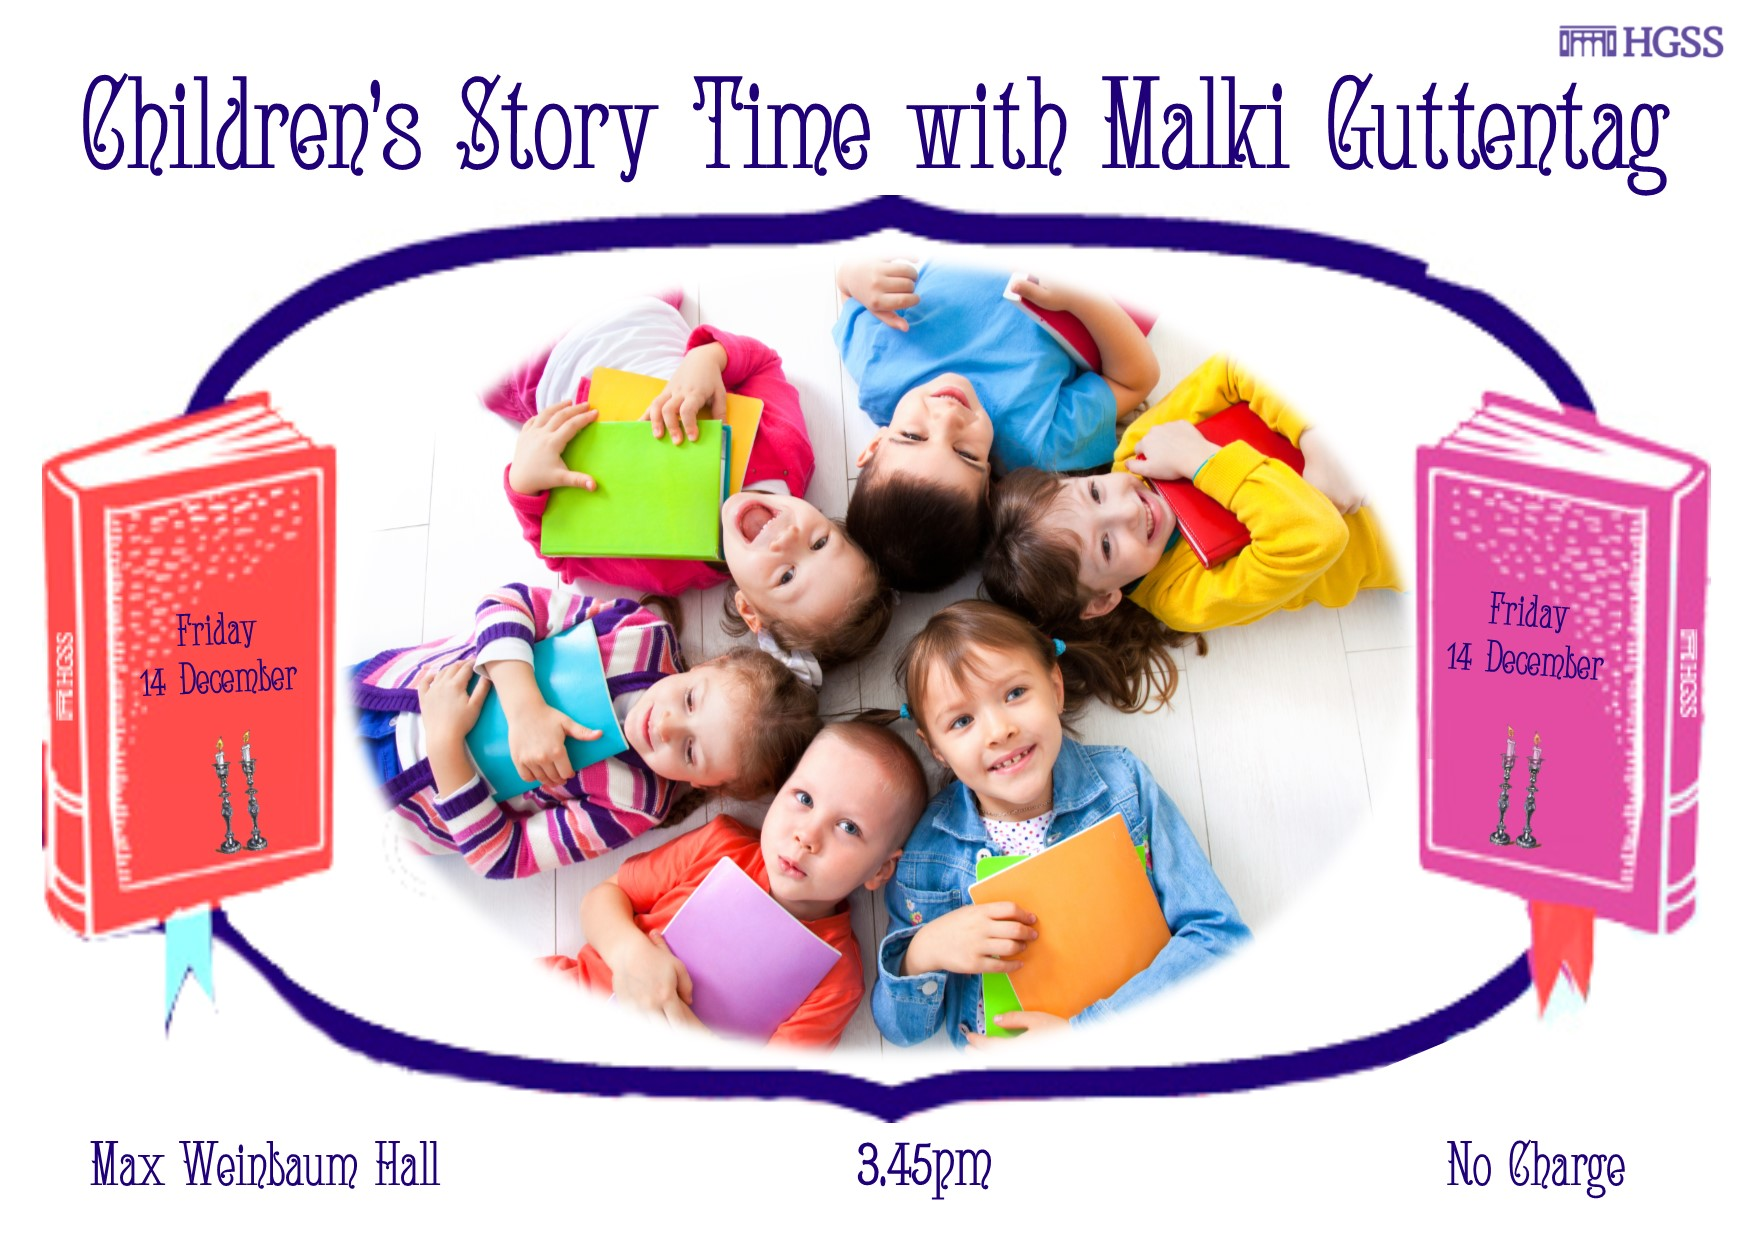 Children's Story Time @ Max Weinbaum Hall